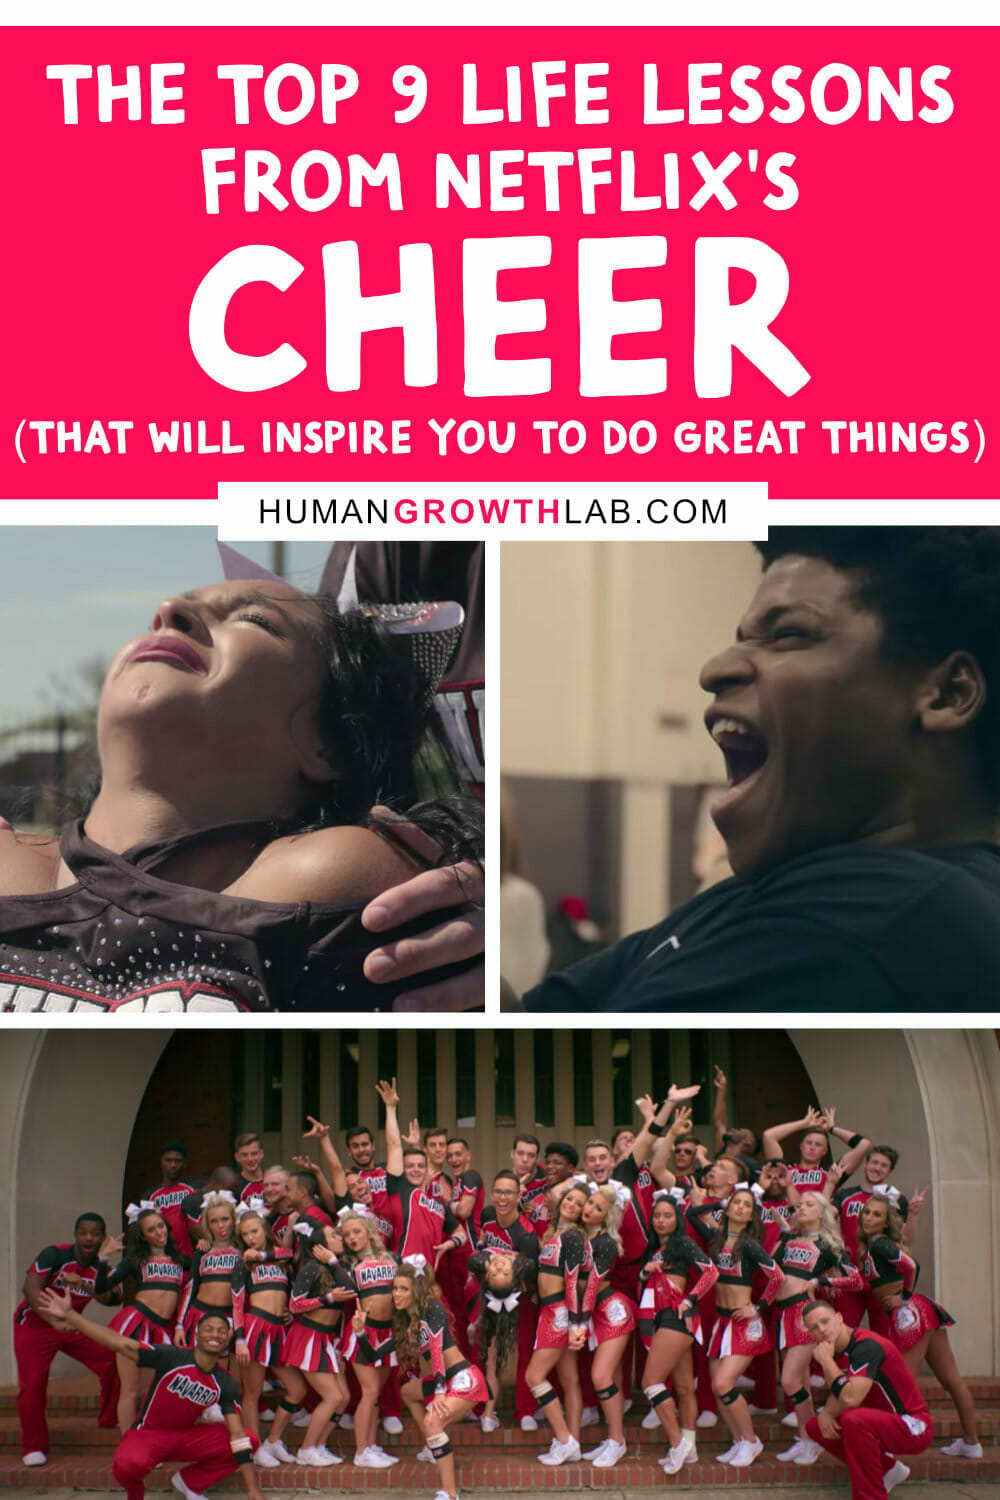 9 Amazing life lessons you can learn from Netflix's Cheer via @humangrowthlab